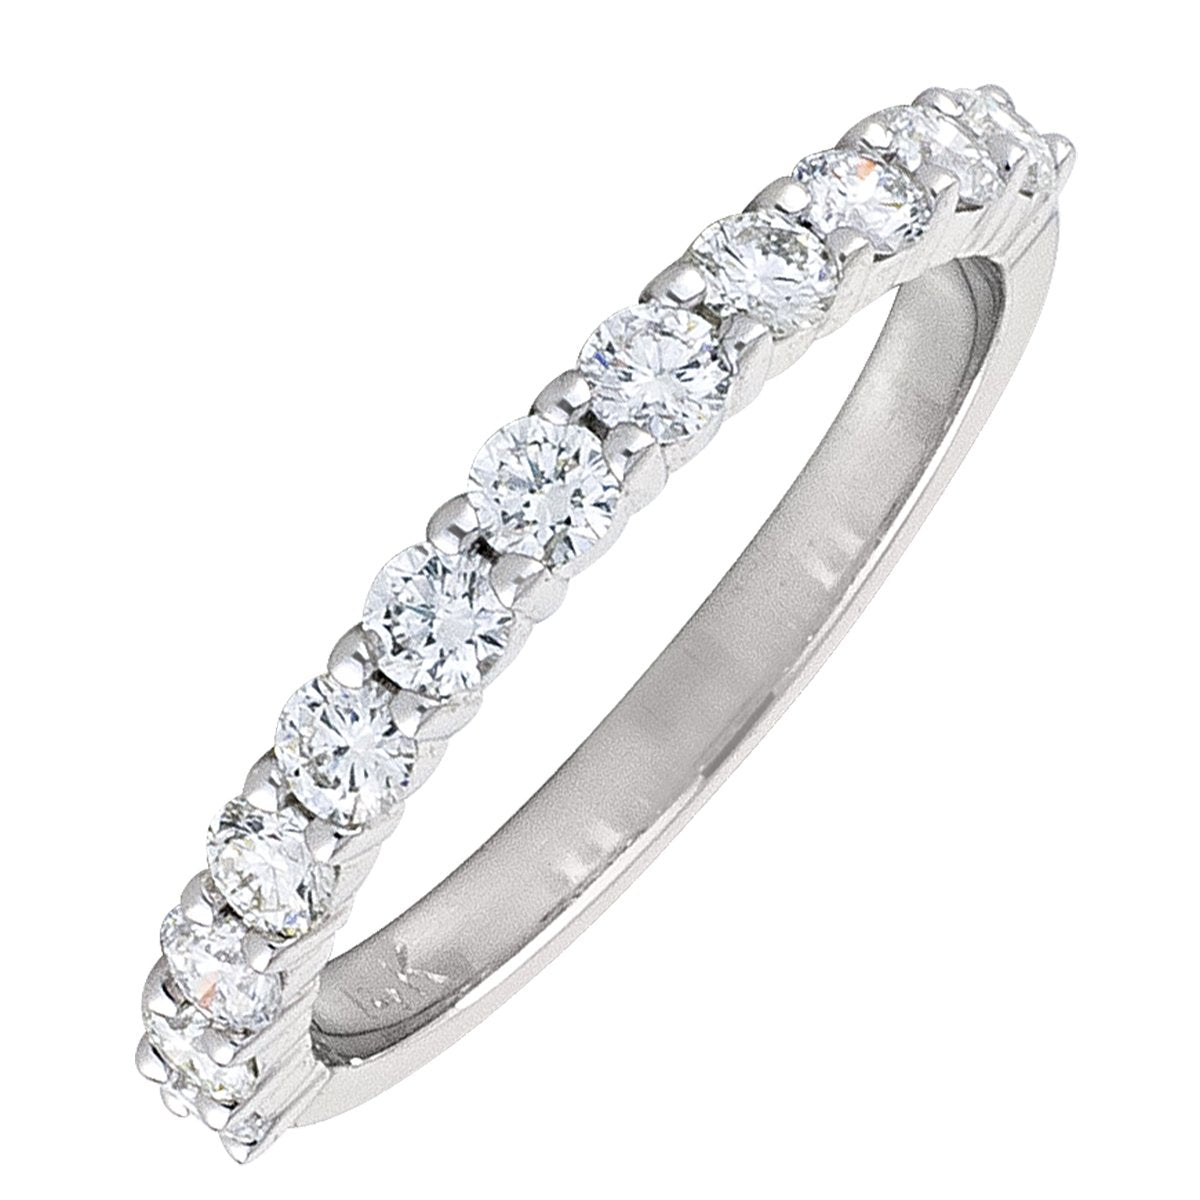 WHITE GOLD DIAMOND SHARED CLAW HALF ETERNITY BAND  (AVAILABE IN VARIOUS STONE AND RING SIZE).